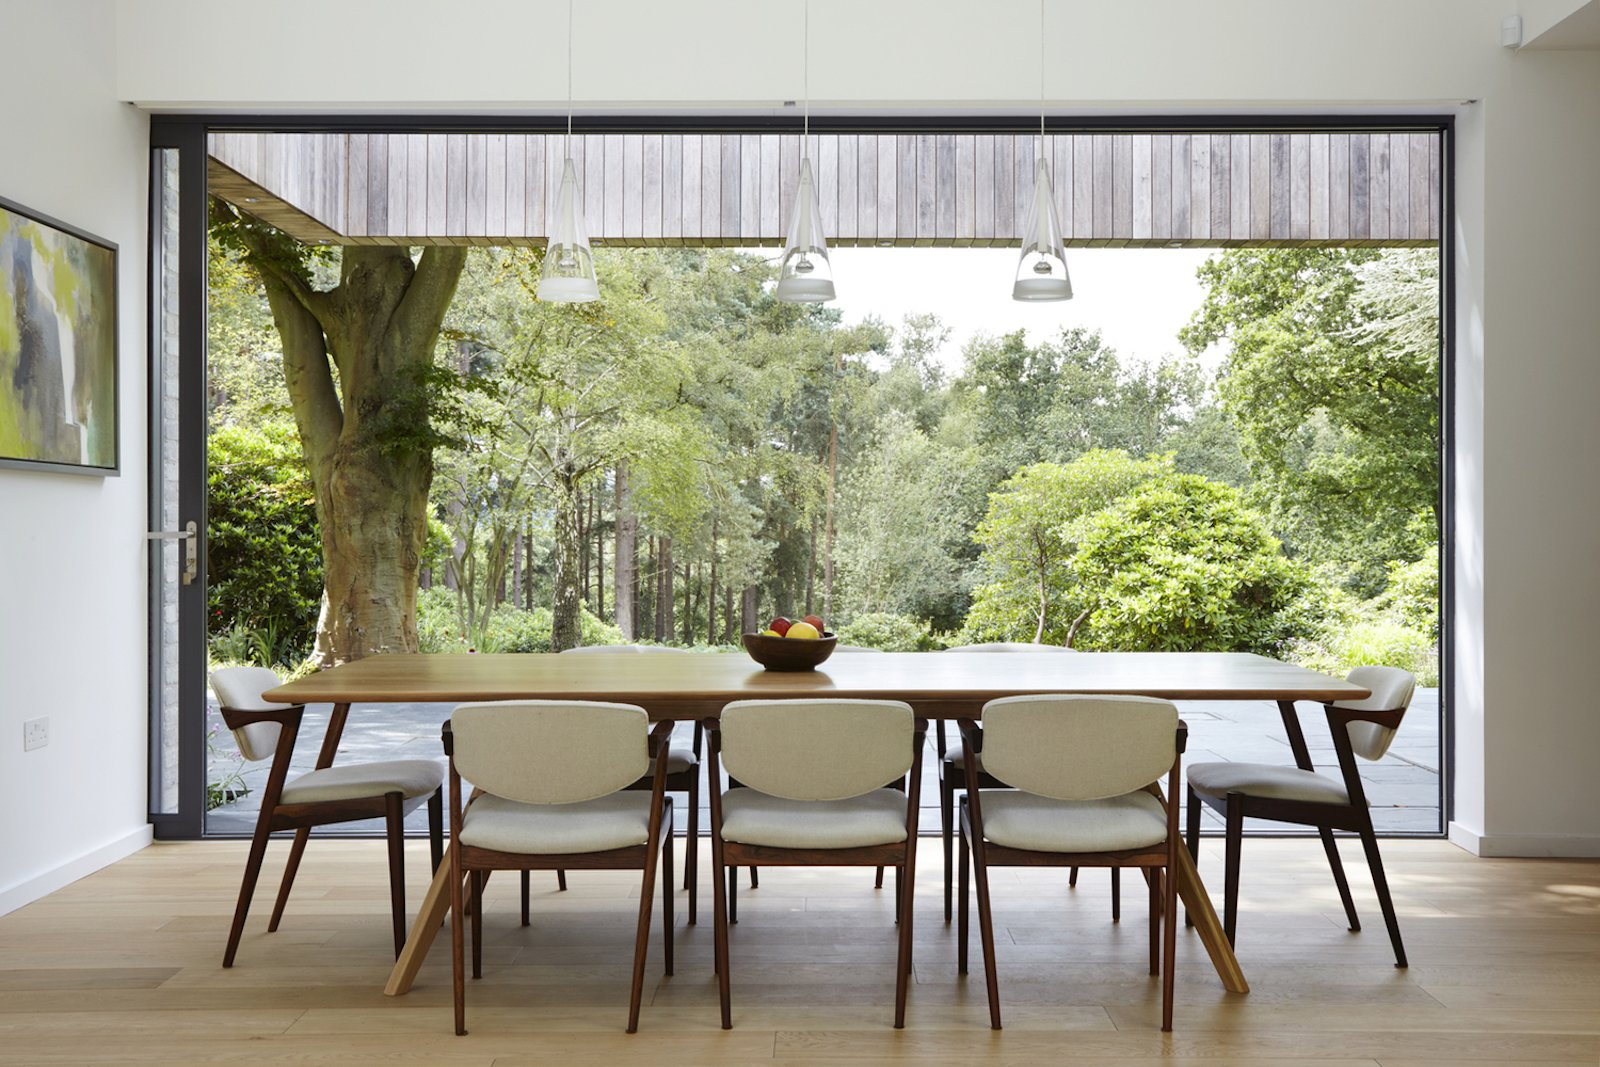 Dining Room, Table, Chair, Pendant Lighting, and Light Hardwood Floor London-based architecture and design studio Alma-nac designed House in the Woods, a contemporary home surrounded by pristine forest in England's South Downs National Park to replace a decrepit, 1950s bungalow. The new 240-square-meter dwelling retains the former building's simple gabled form and footprint, but offers greater flexibility with its ability to change from a single bedroom home to five bedrooms for large family gatherings.  Photo 6 of 10 in Raised in Just 10 Days, This Airtight Prefab Is a Lesson in Efficiency from 50 Modern Homes With Floor-to-Ceiling Windows